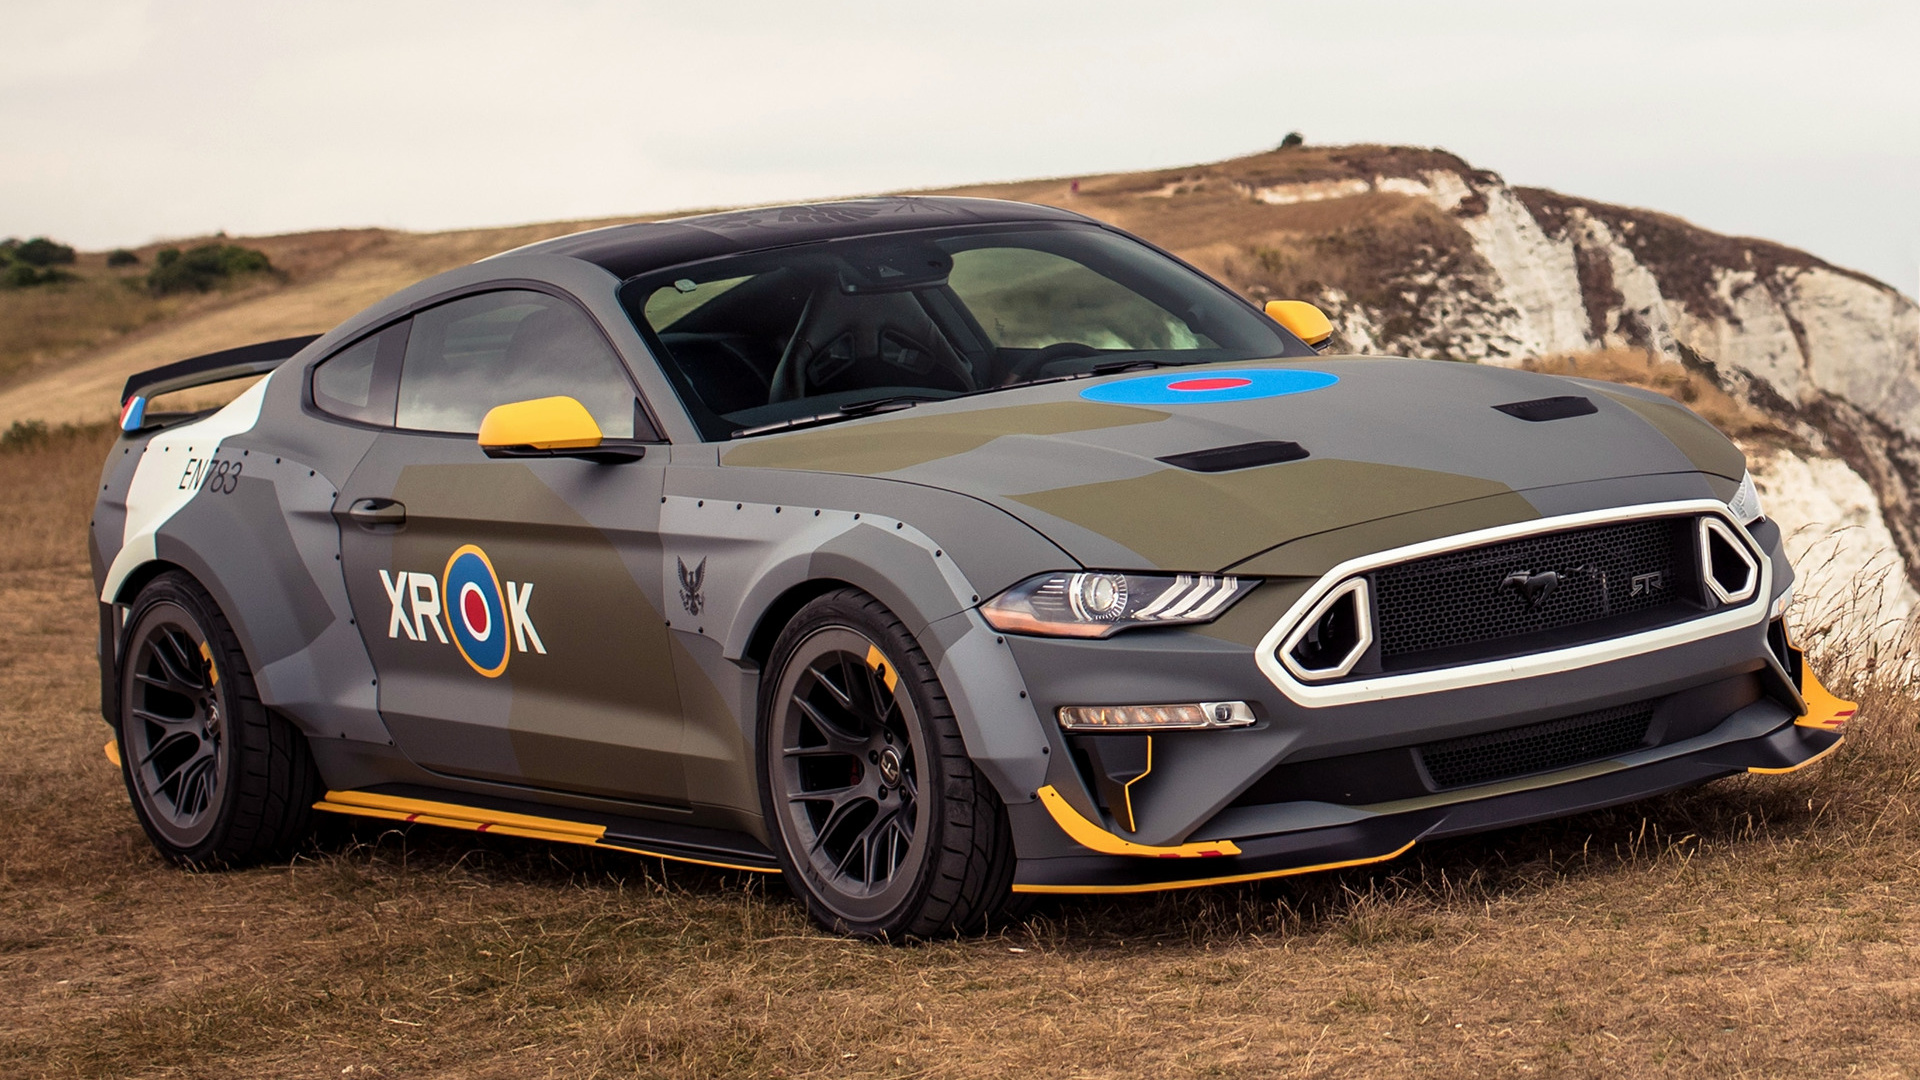 2018 Ford Eagle Squadron Mustang Gt Hd Wallpaper